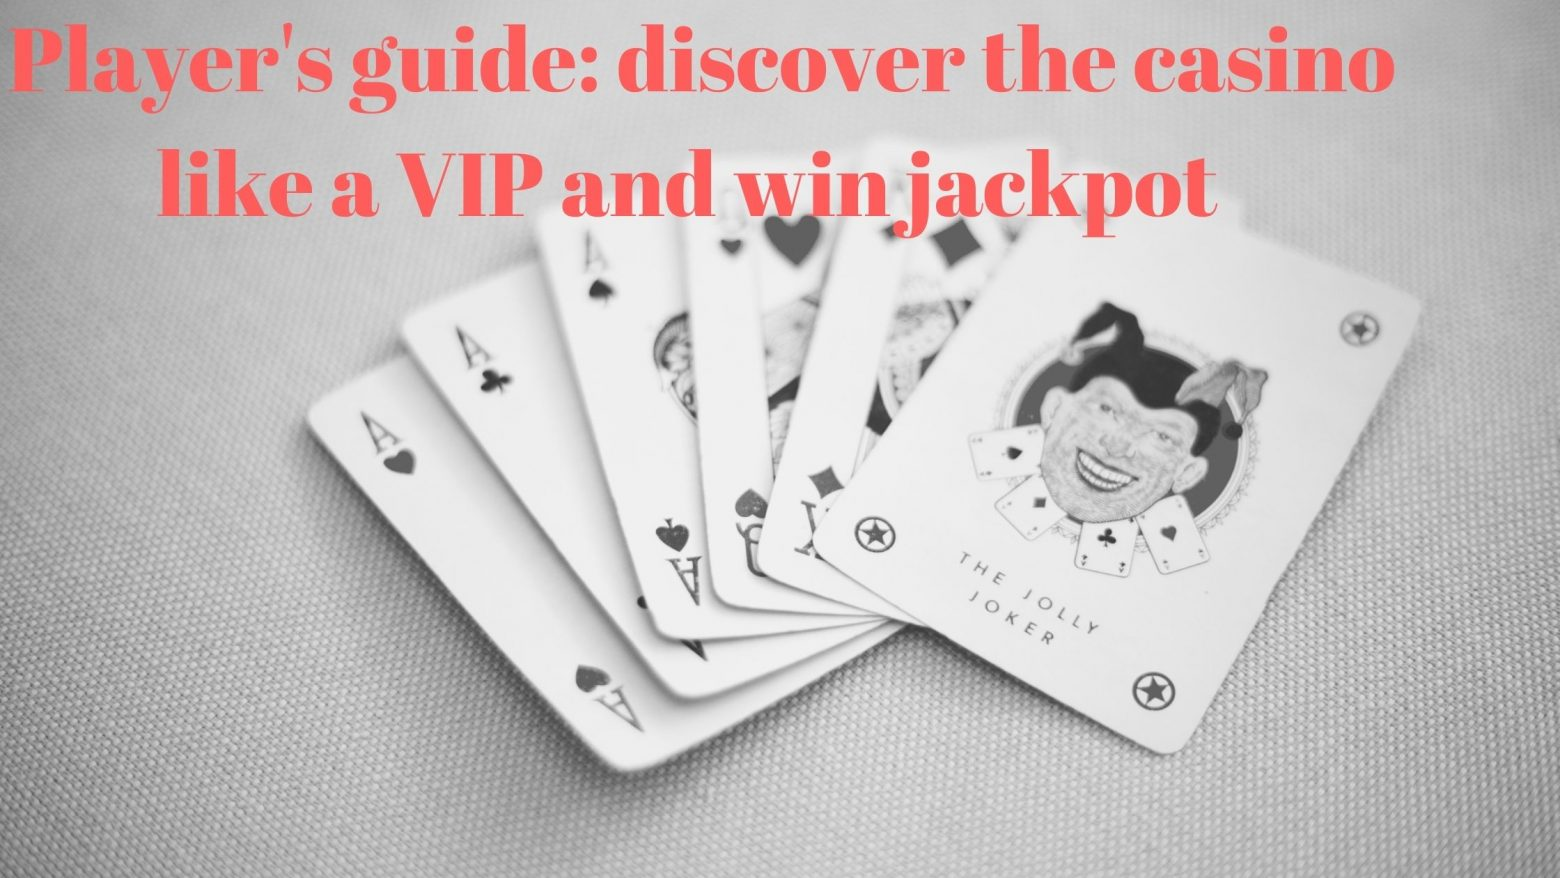 Players guide to discover casino like a vip and win jackpot